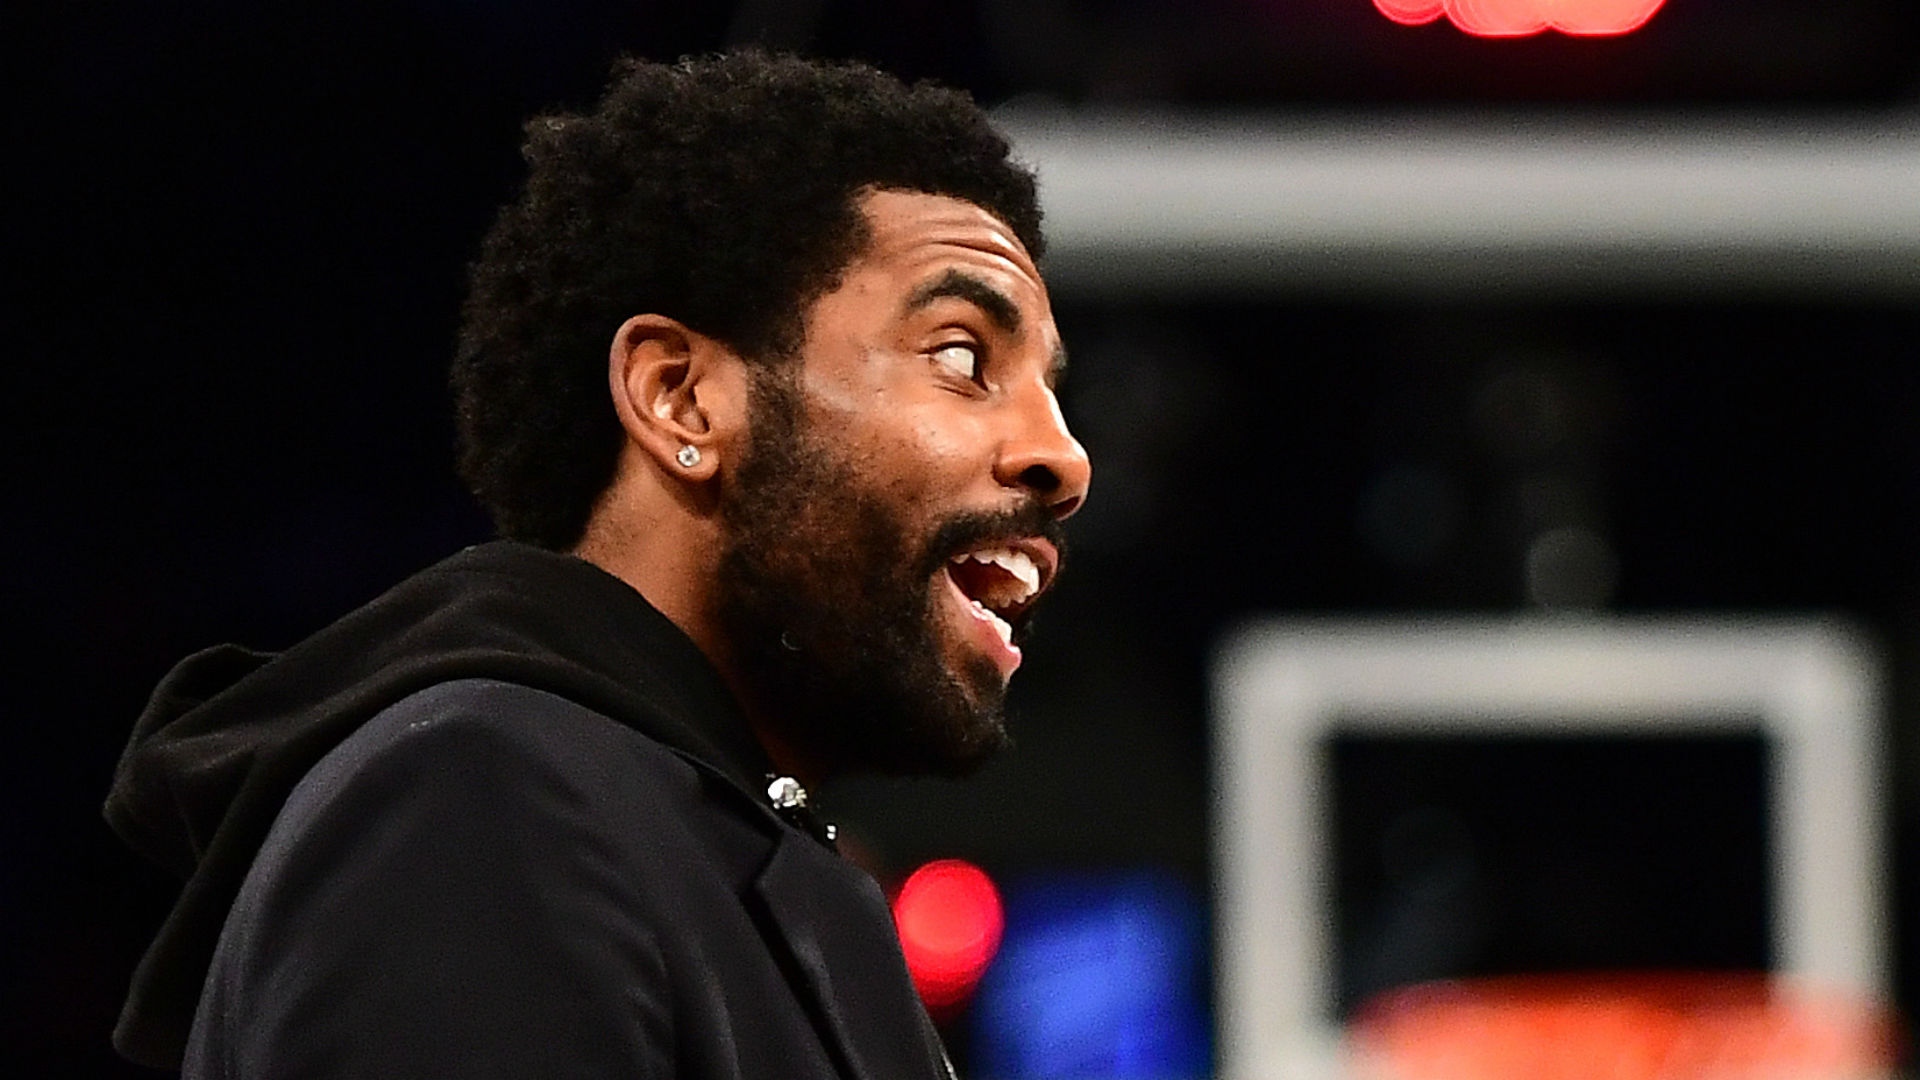 Kyrie Irving hits back at Celtics fans